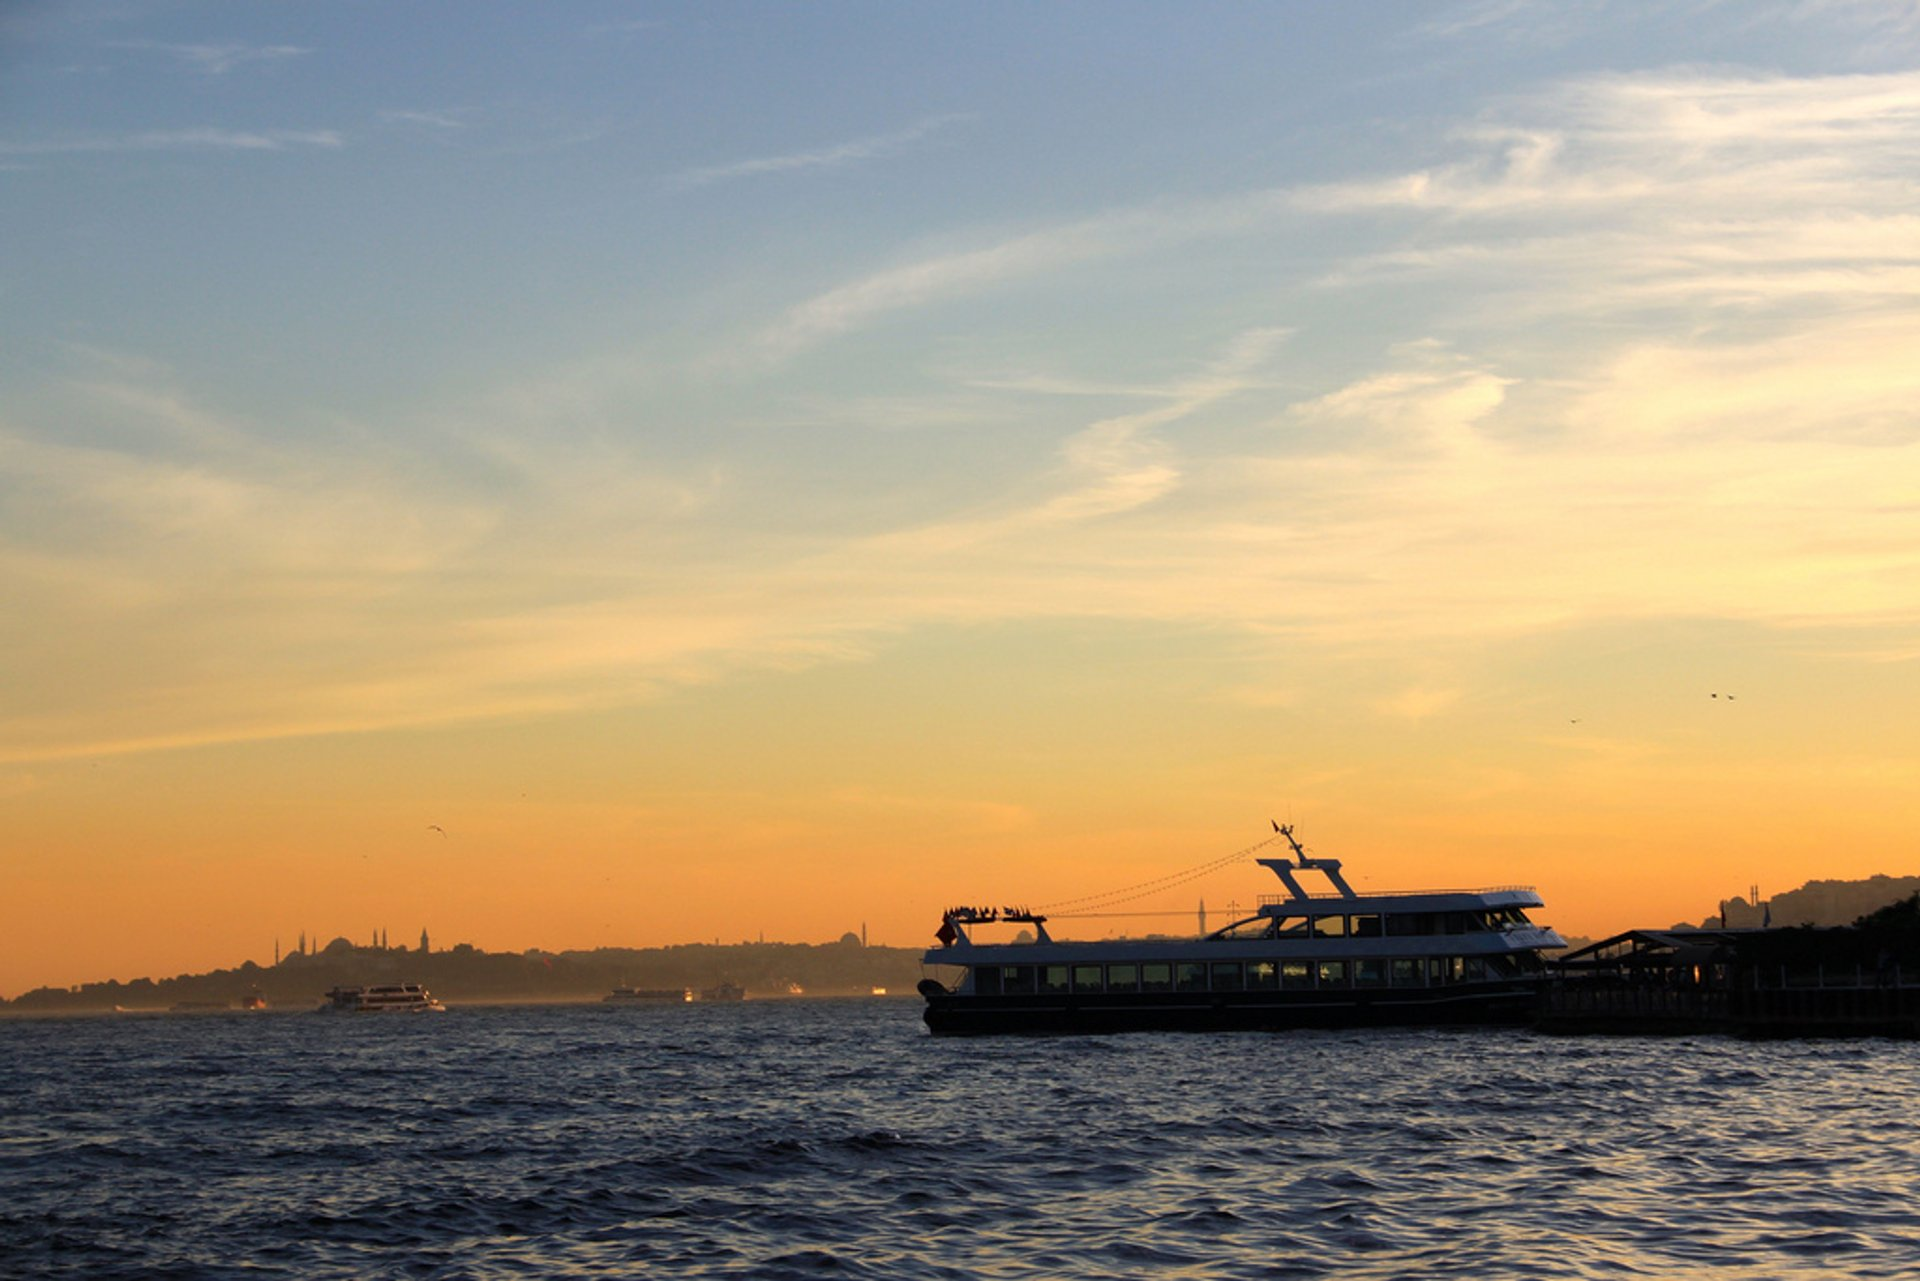 Sunset Bosphorus Cruise in Istanbul - Best Time